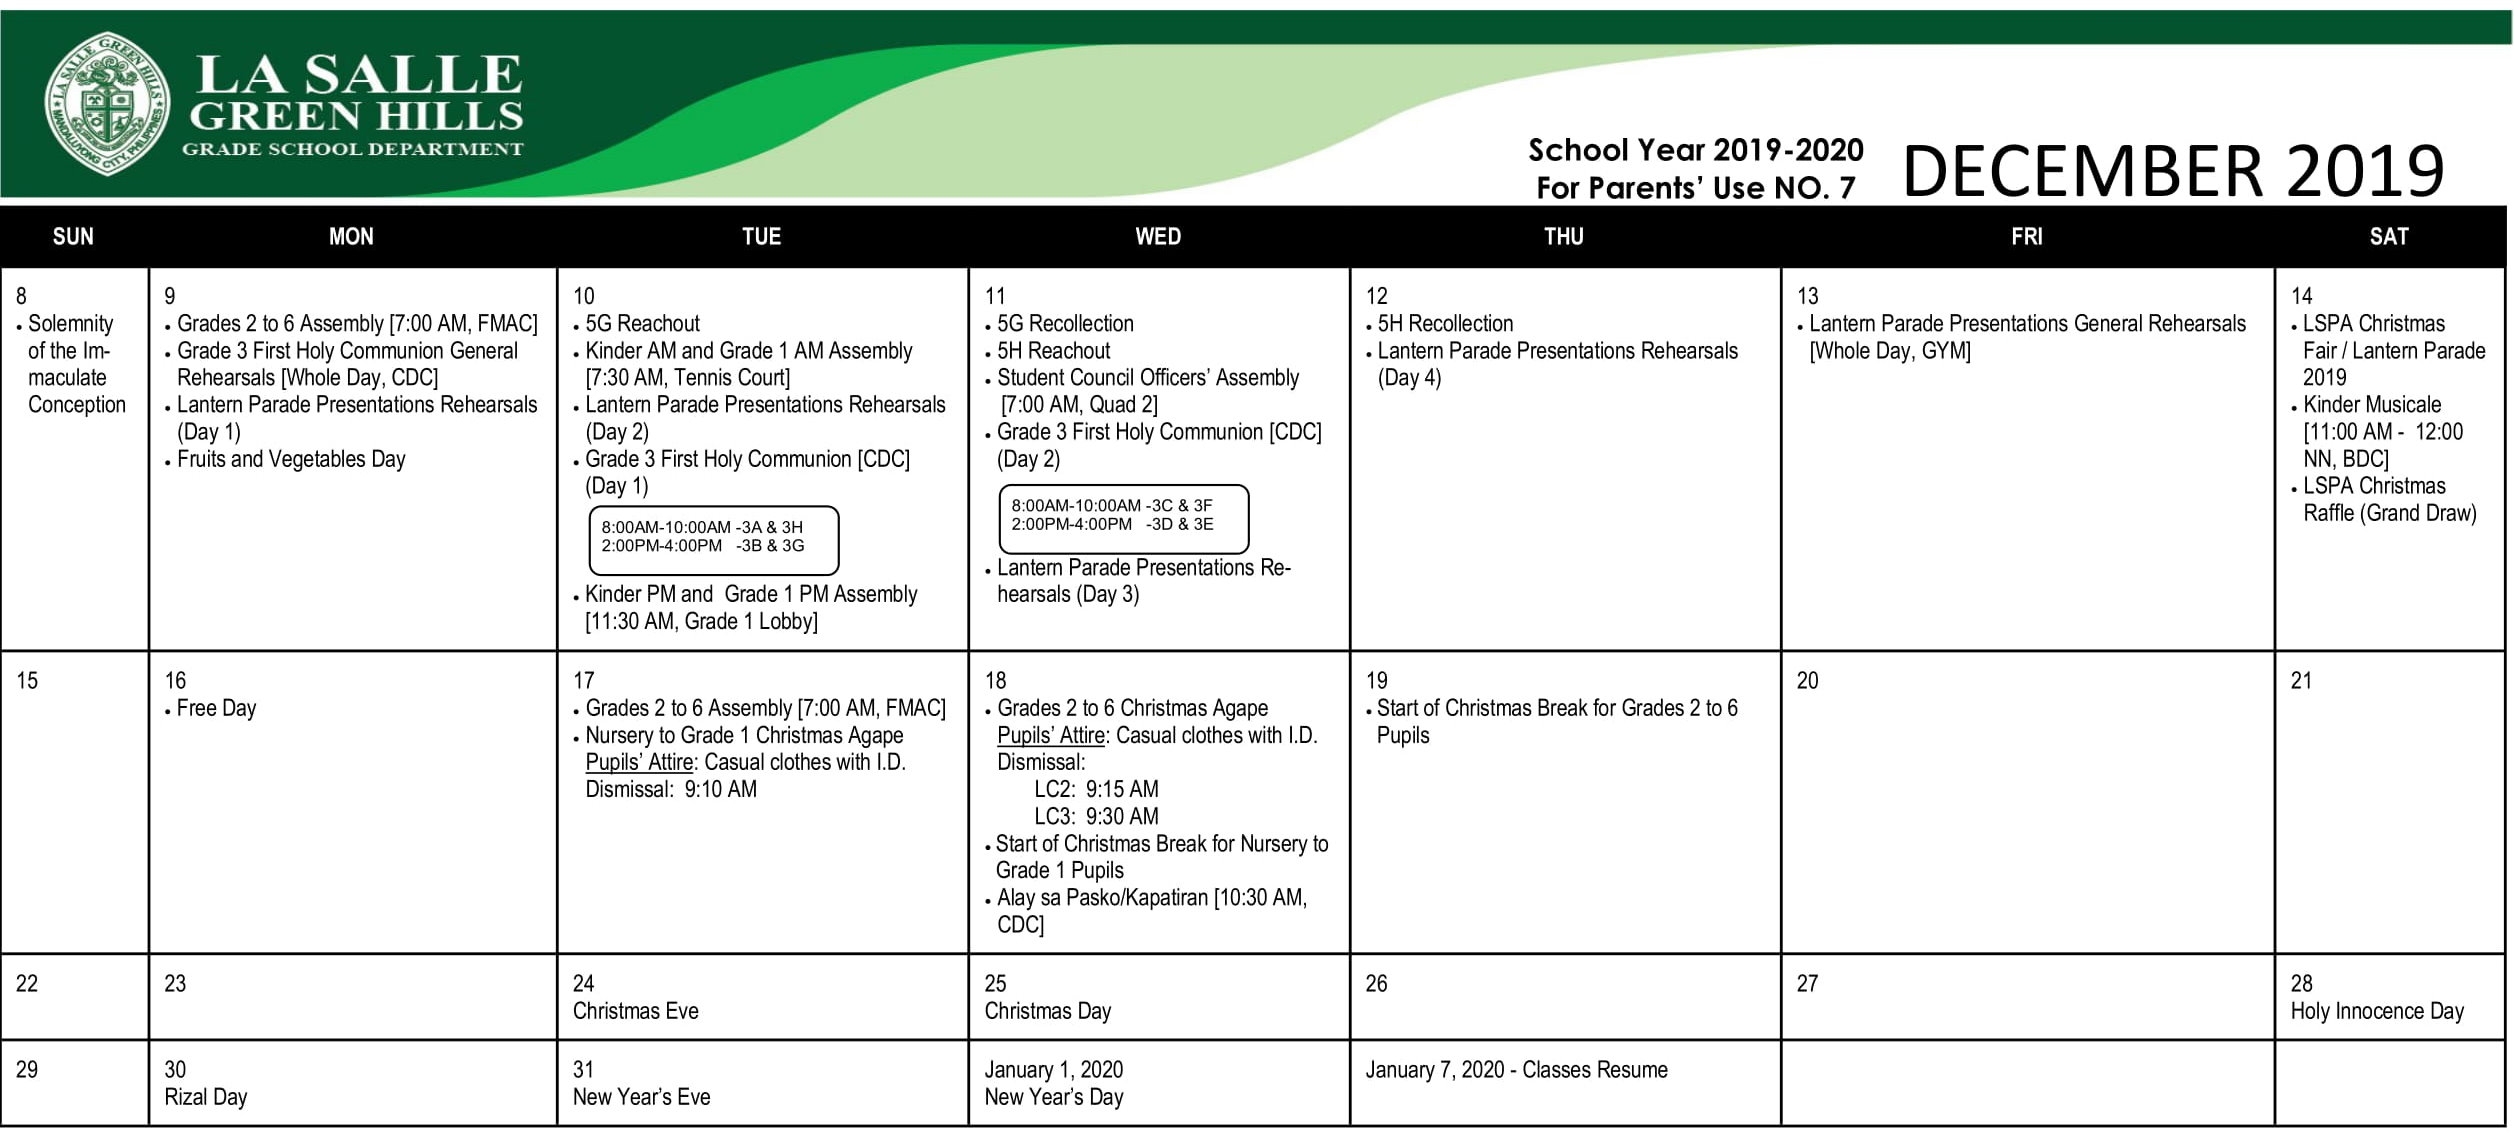 2019 Academic Calendar - La Salle Green Hills Grade School Within La Salle University Academic Calendar